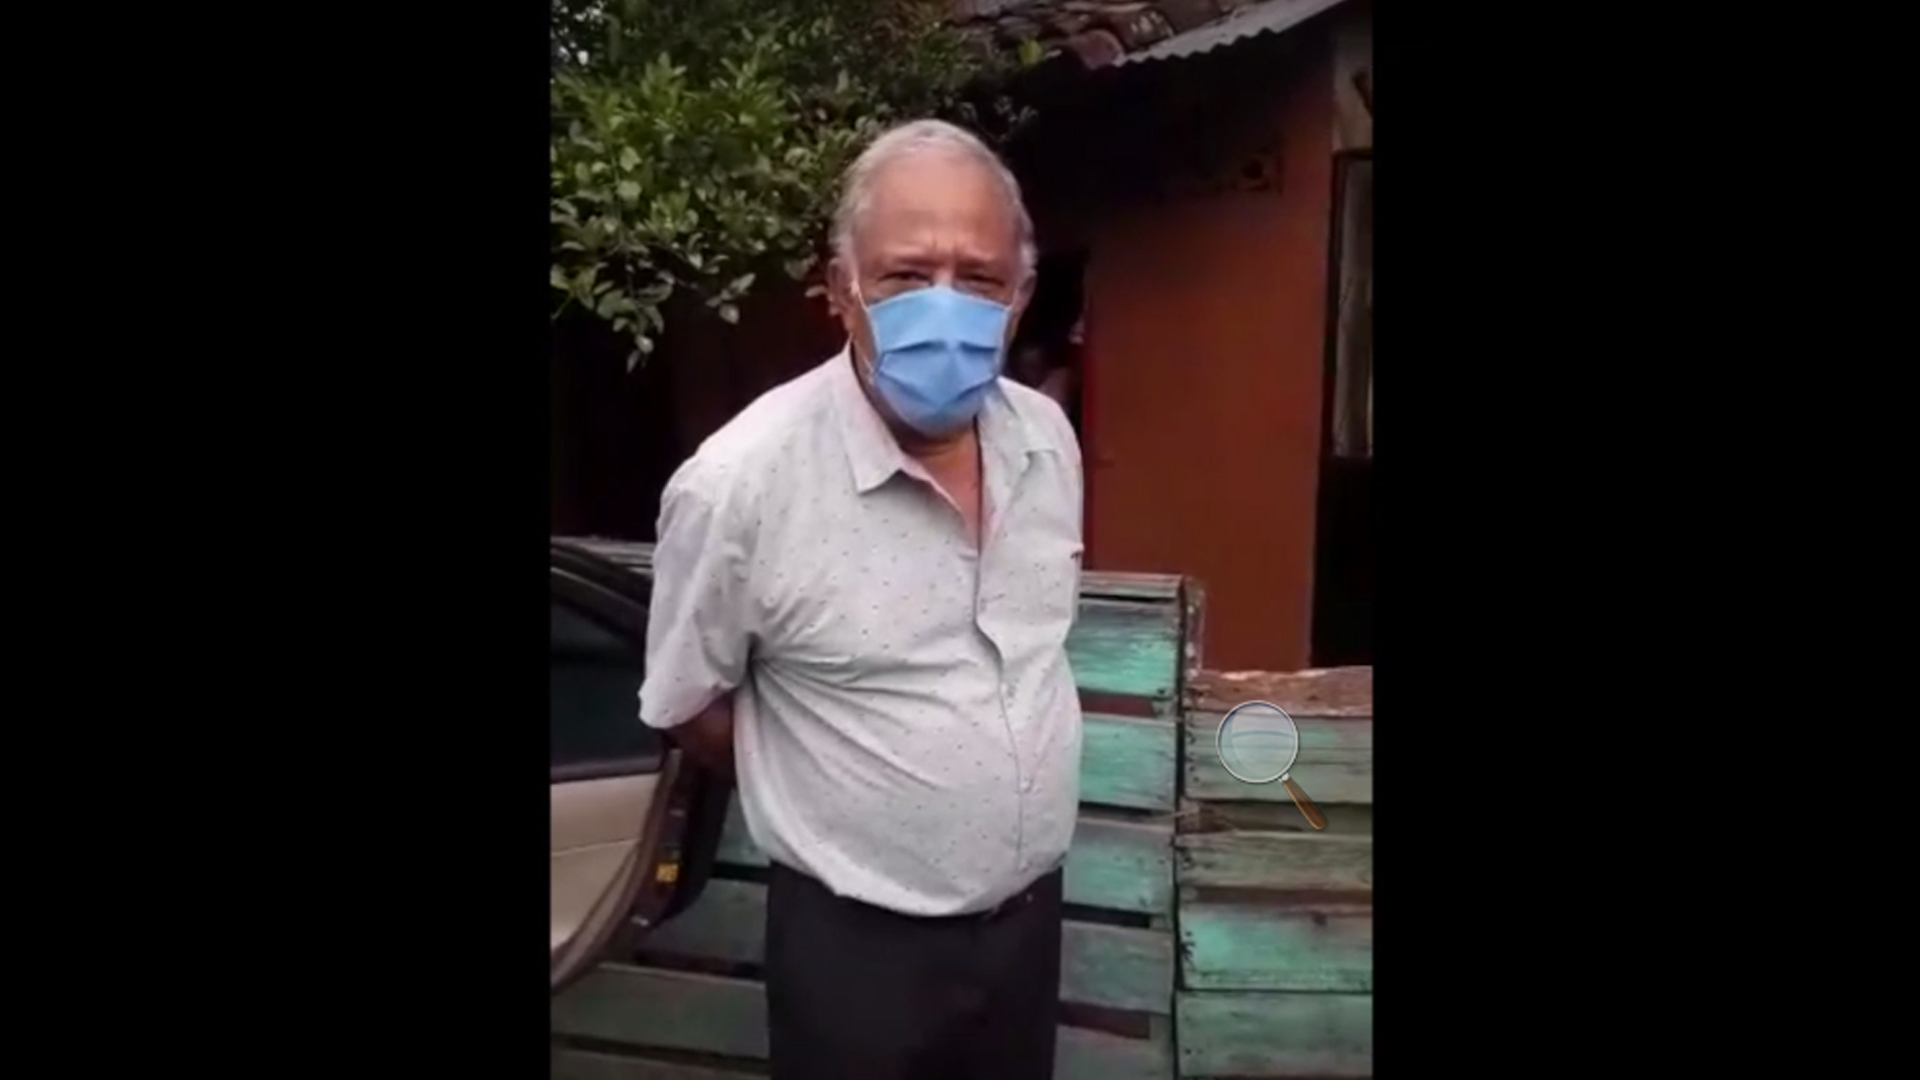 Delivering Donated Supplies During A Pandemic With Ronald